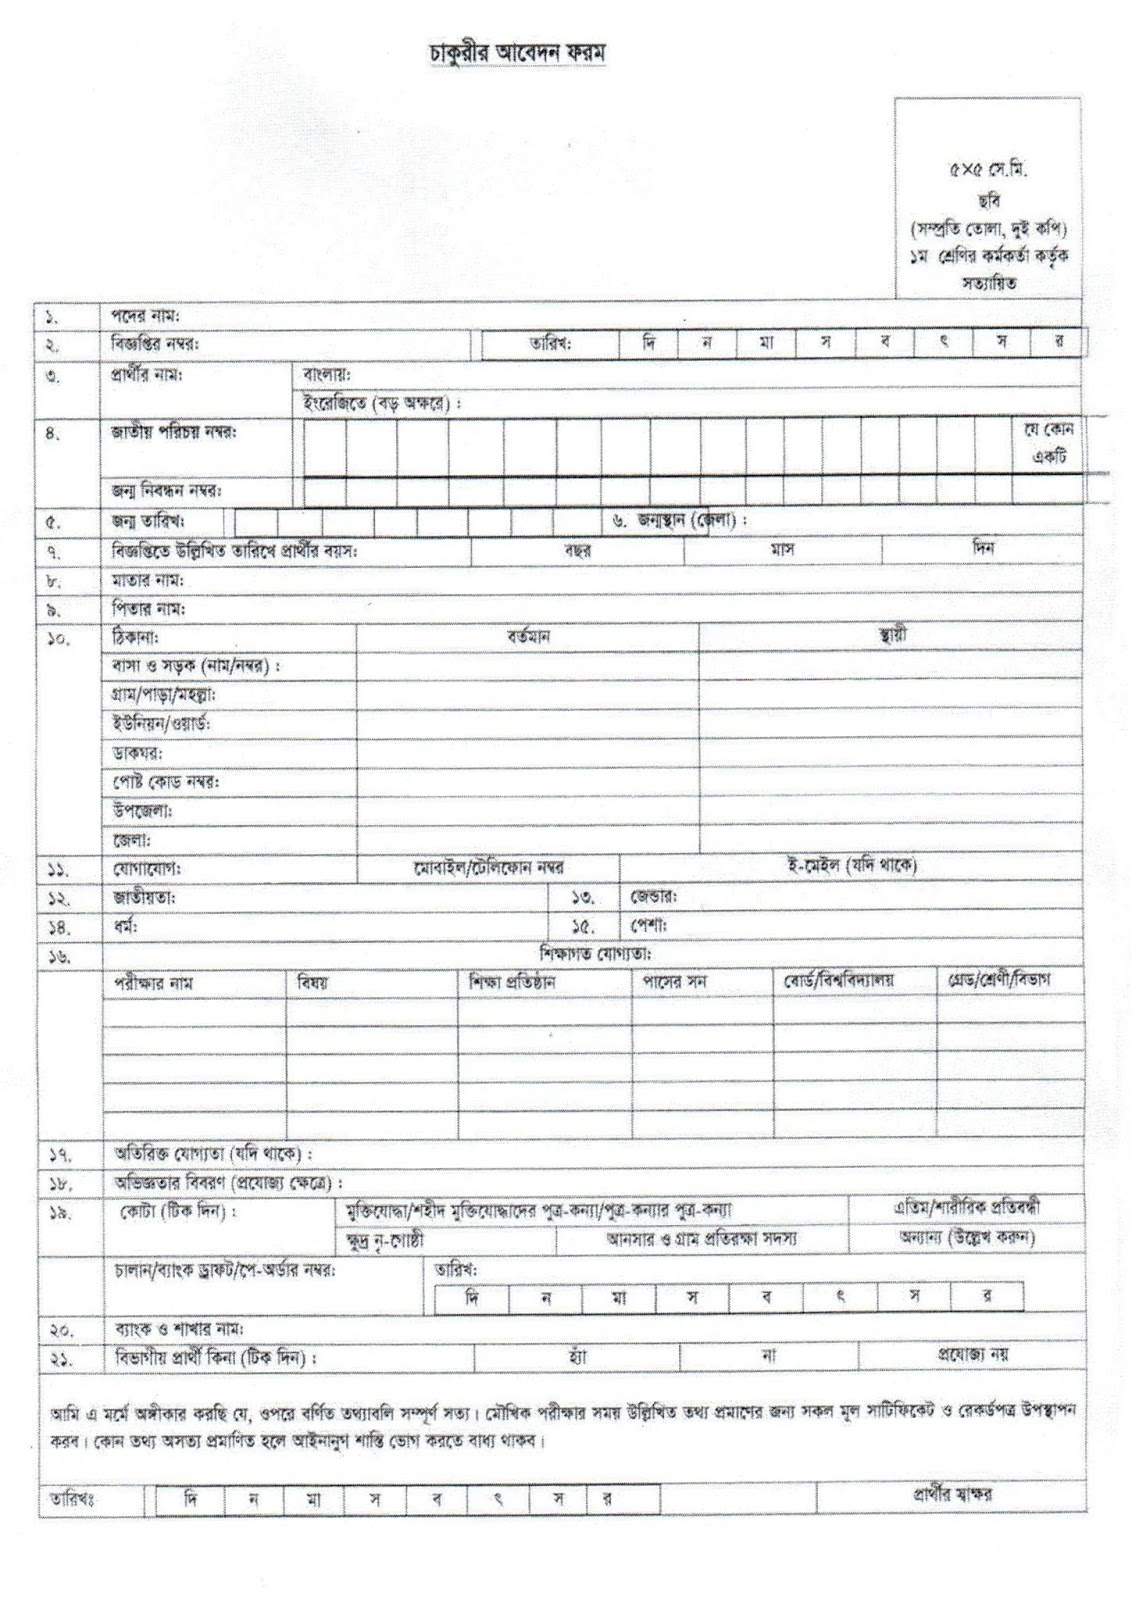 Bureau of Non-Formal Education (BNFE) Job Application Form